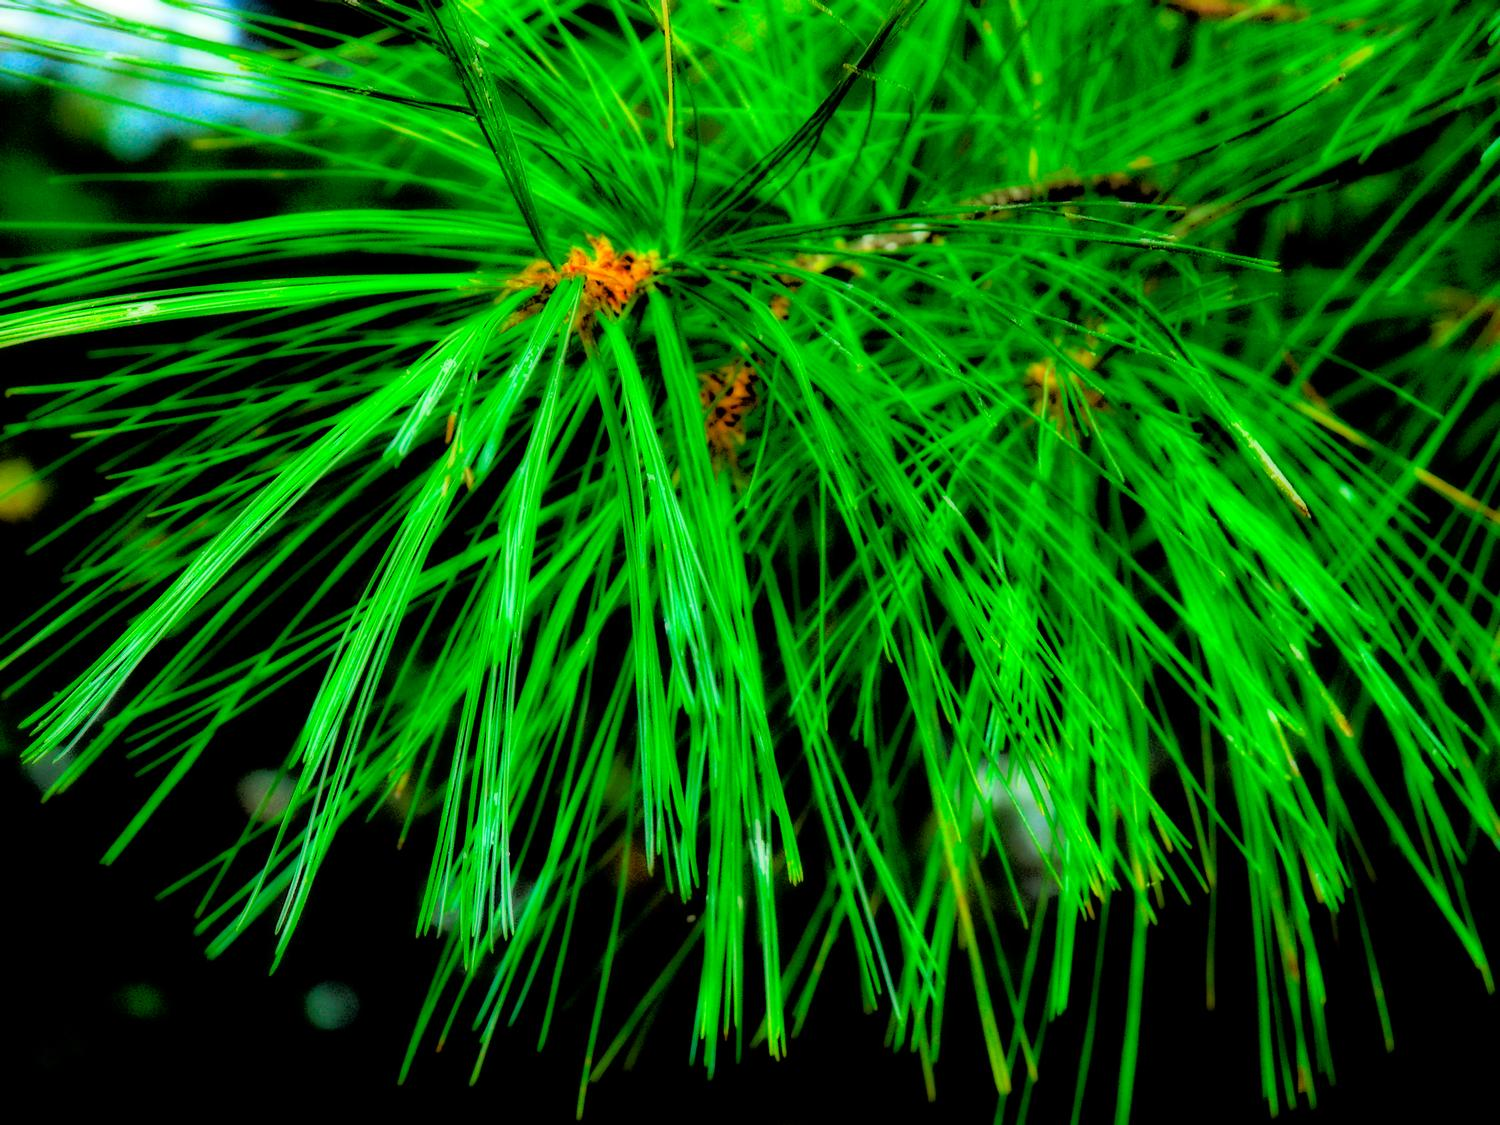 - Pine needles - Kodak Easyshare P880 - Tony Karp, design, art, photography, techno-impressionist, techno-impressionism, aerial photography , drone , drones , dji , mavic pro , video , 3D printing - Books -